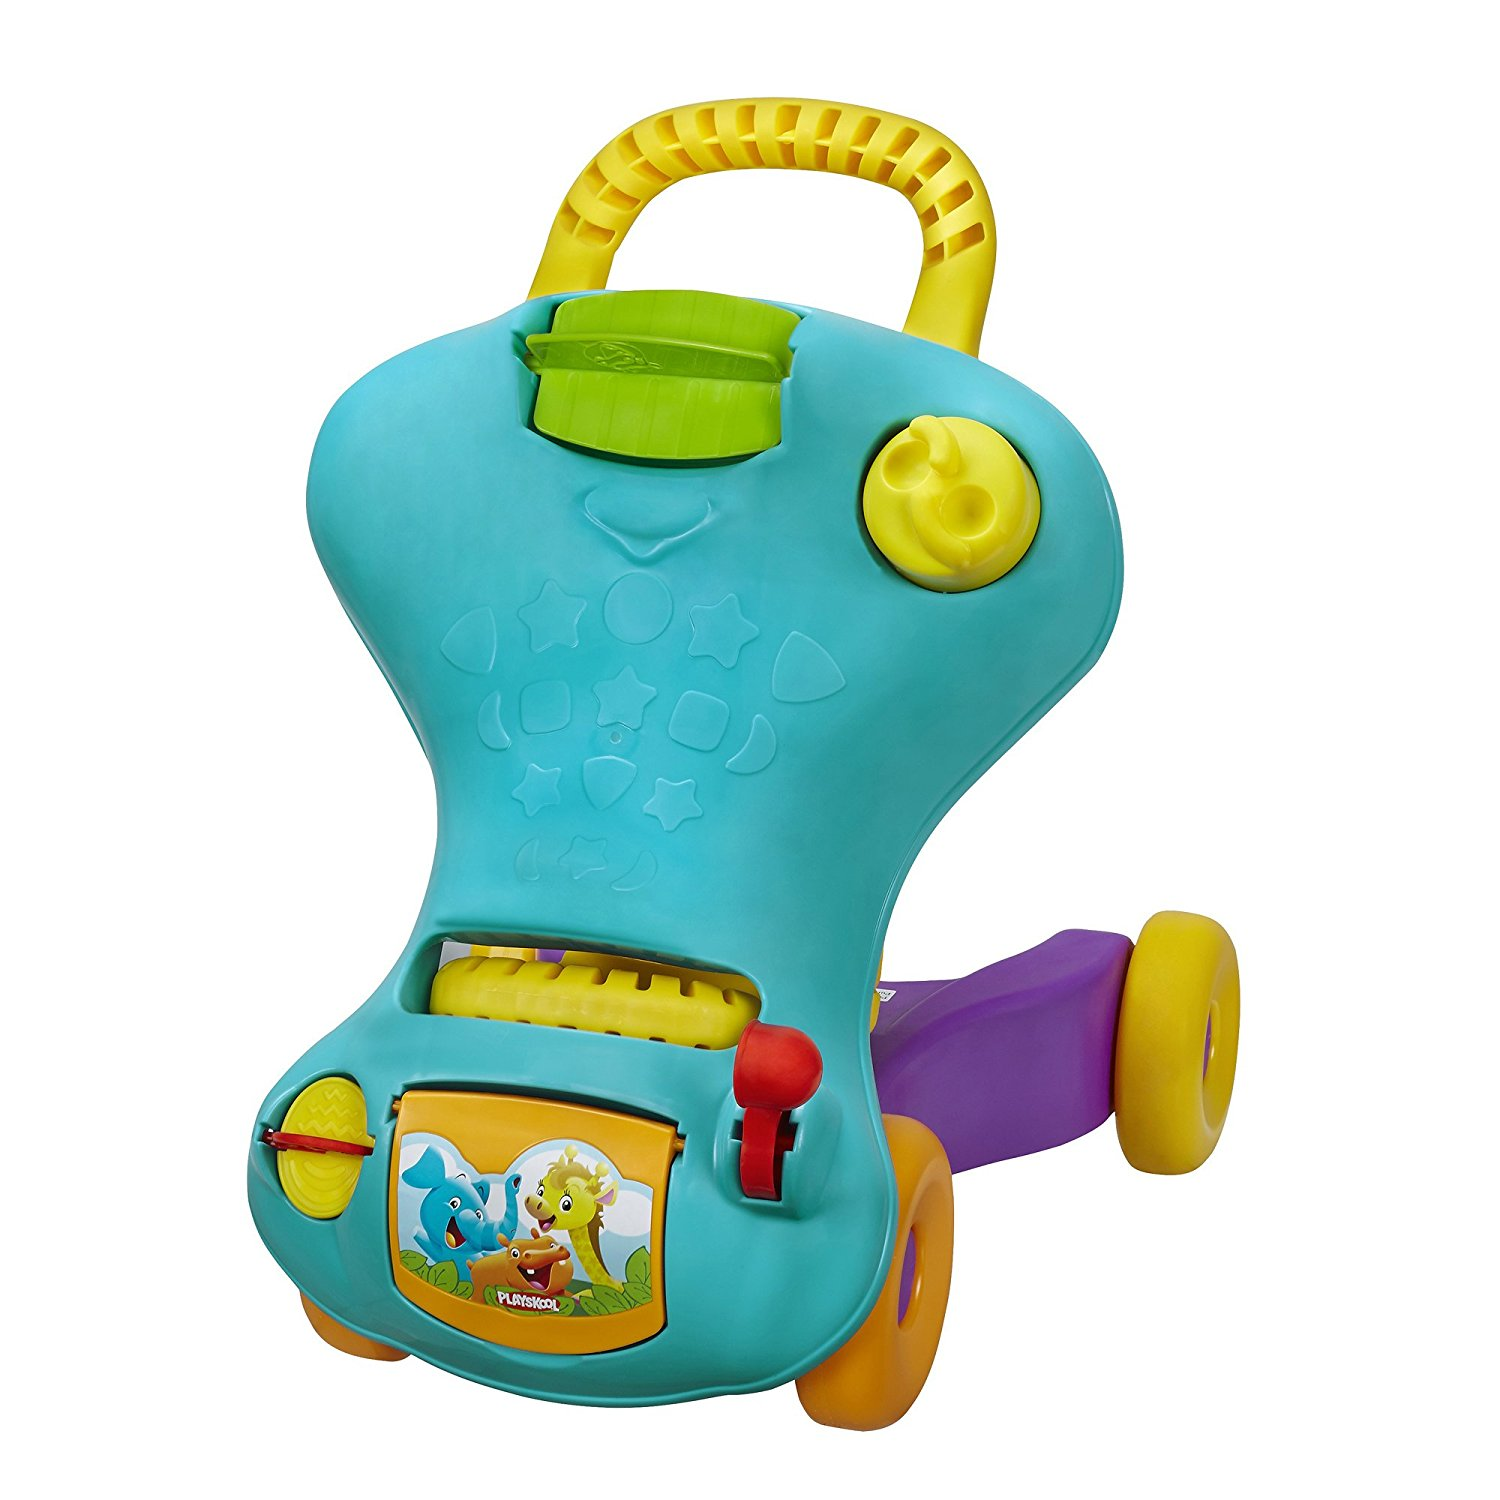 Step Start Walk 'n Ride, Rescue Start Old Busy Hippo Exclusive Vehicles Learning Grow Potato Rideon Lion 2in1... by